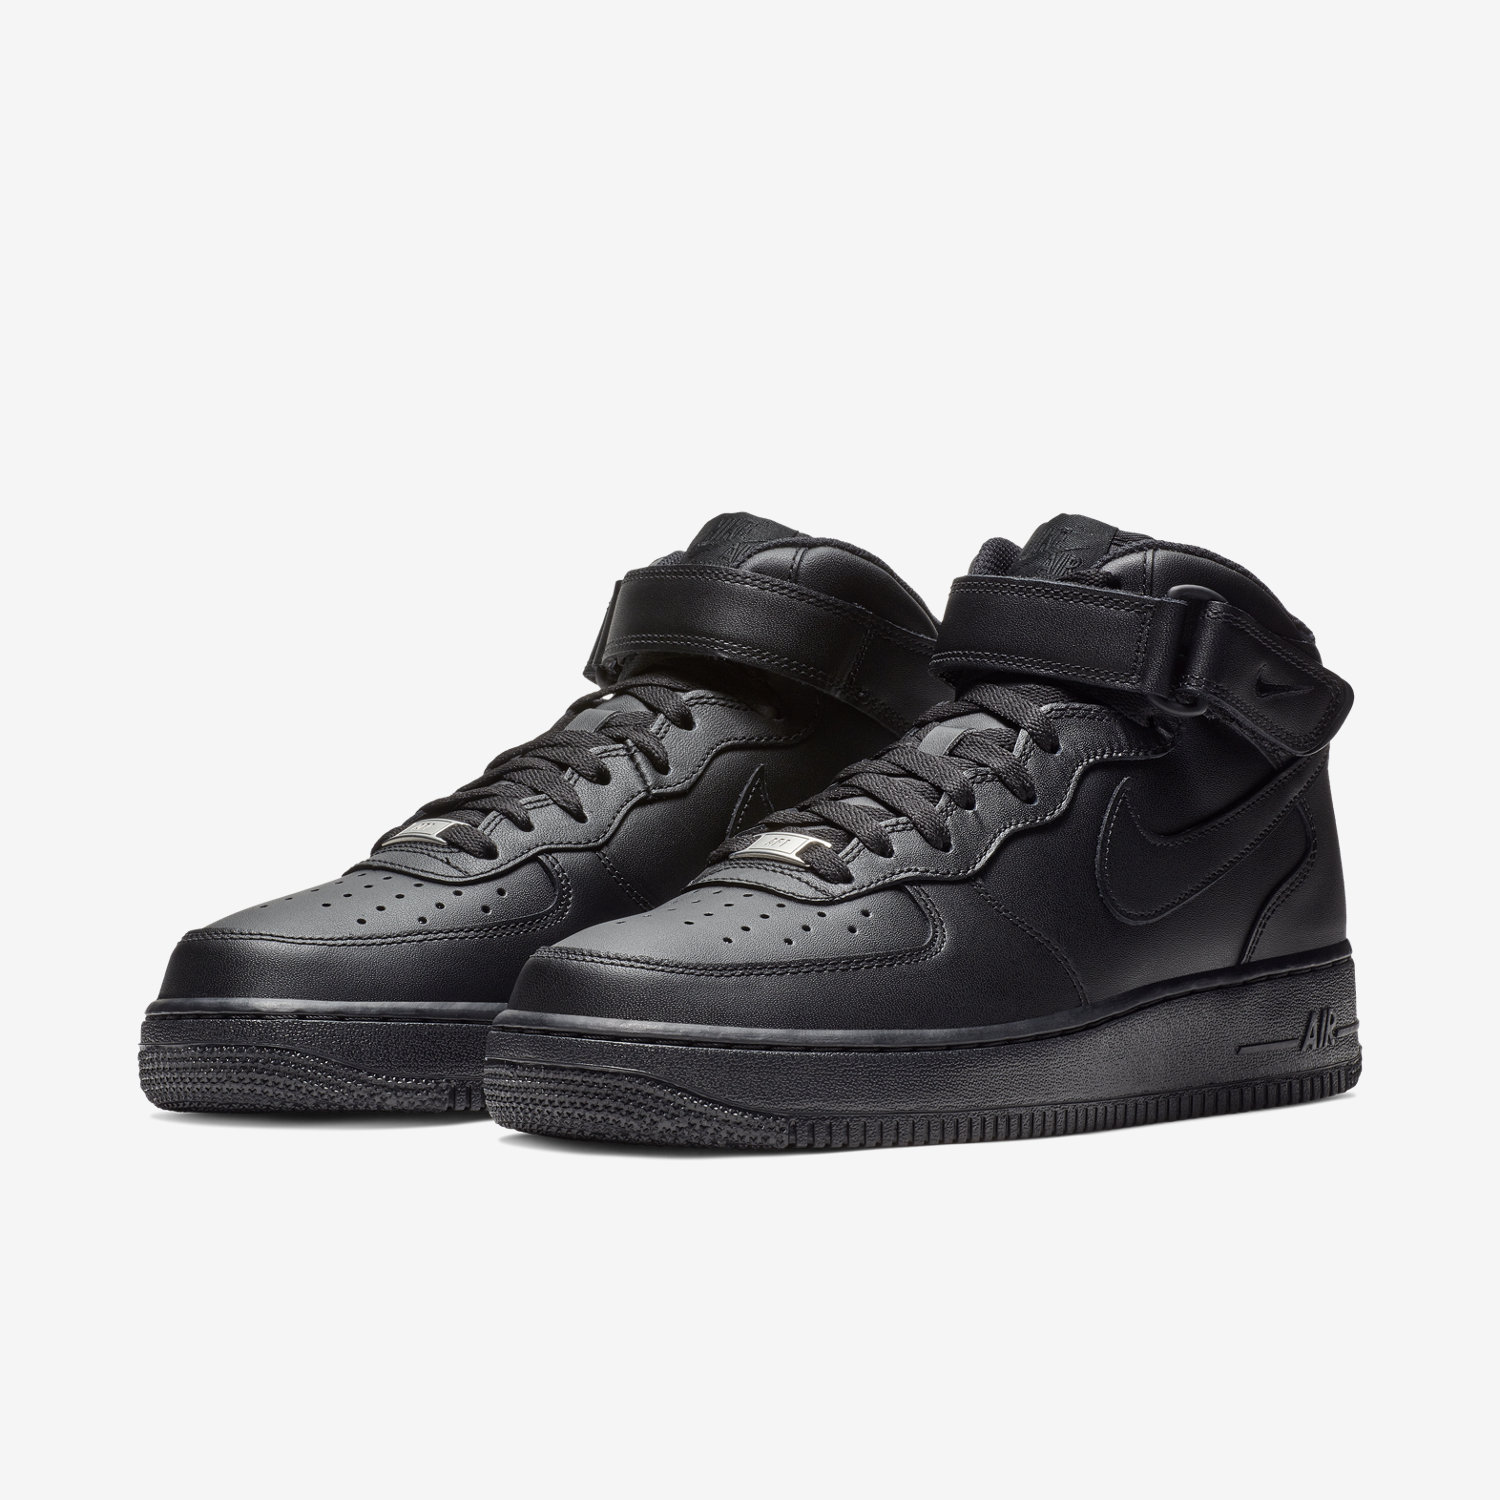 nike air force 1 mid schwarz weiss estrelinha. Black Bedroom Furniture Sets. Home Design Ideas